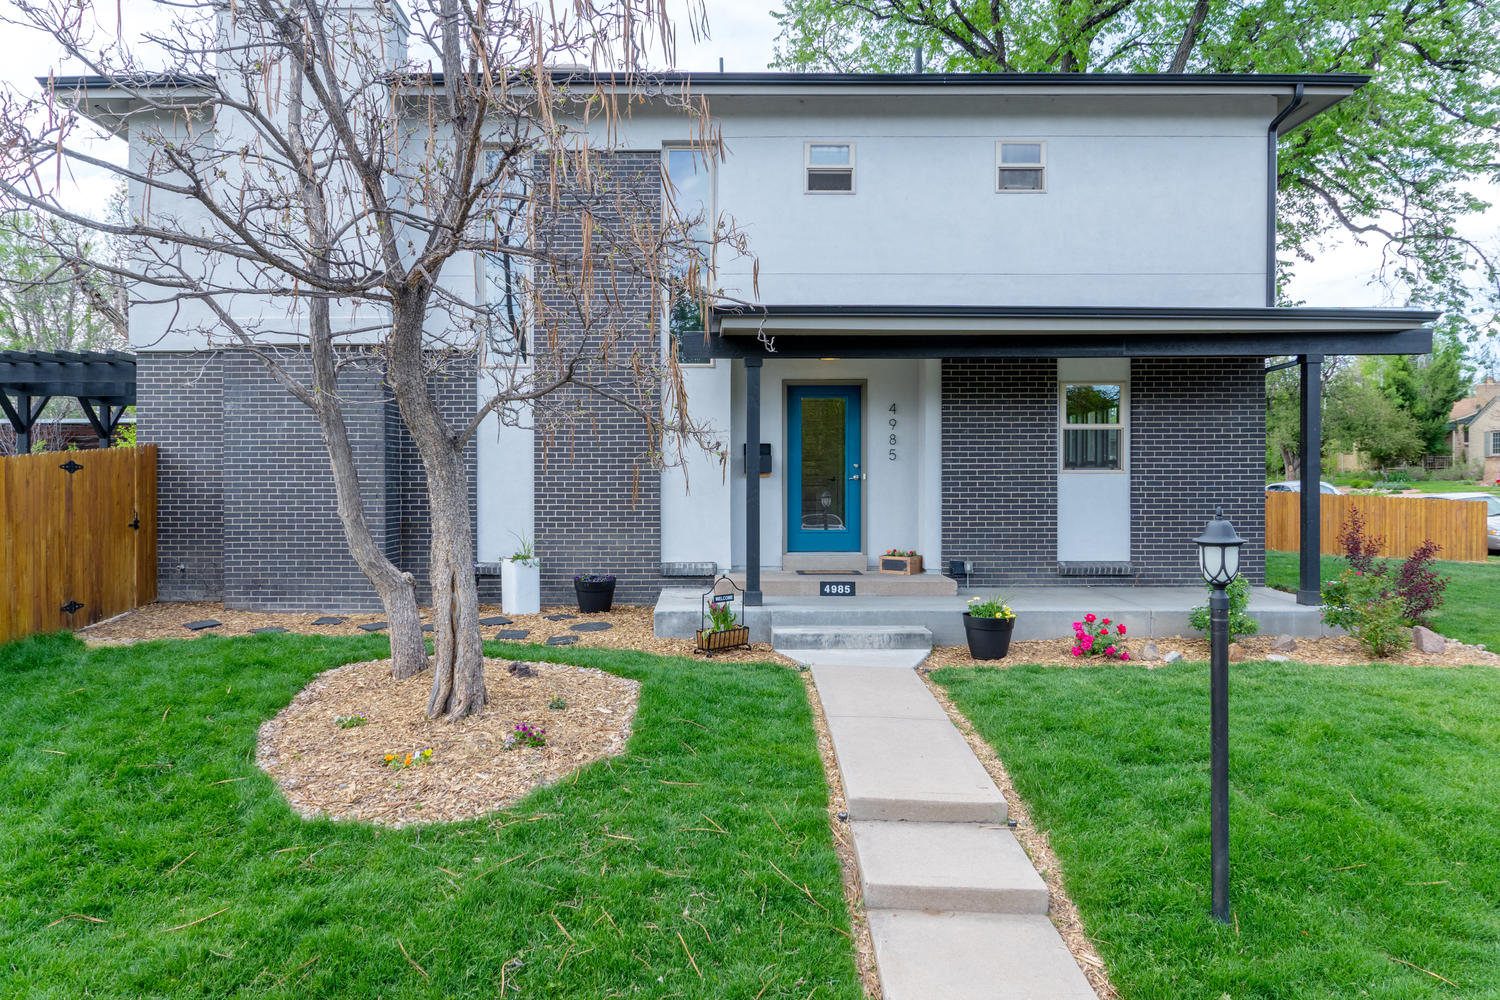 Single Family Home for Sale at Impeccable 2013 Remodeled Home 4985 East 12th Avenue Denver, Colorado, 80220 United States